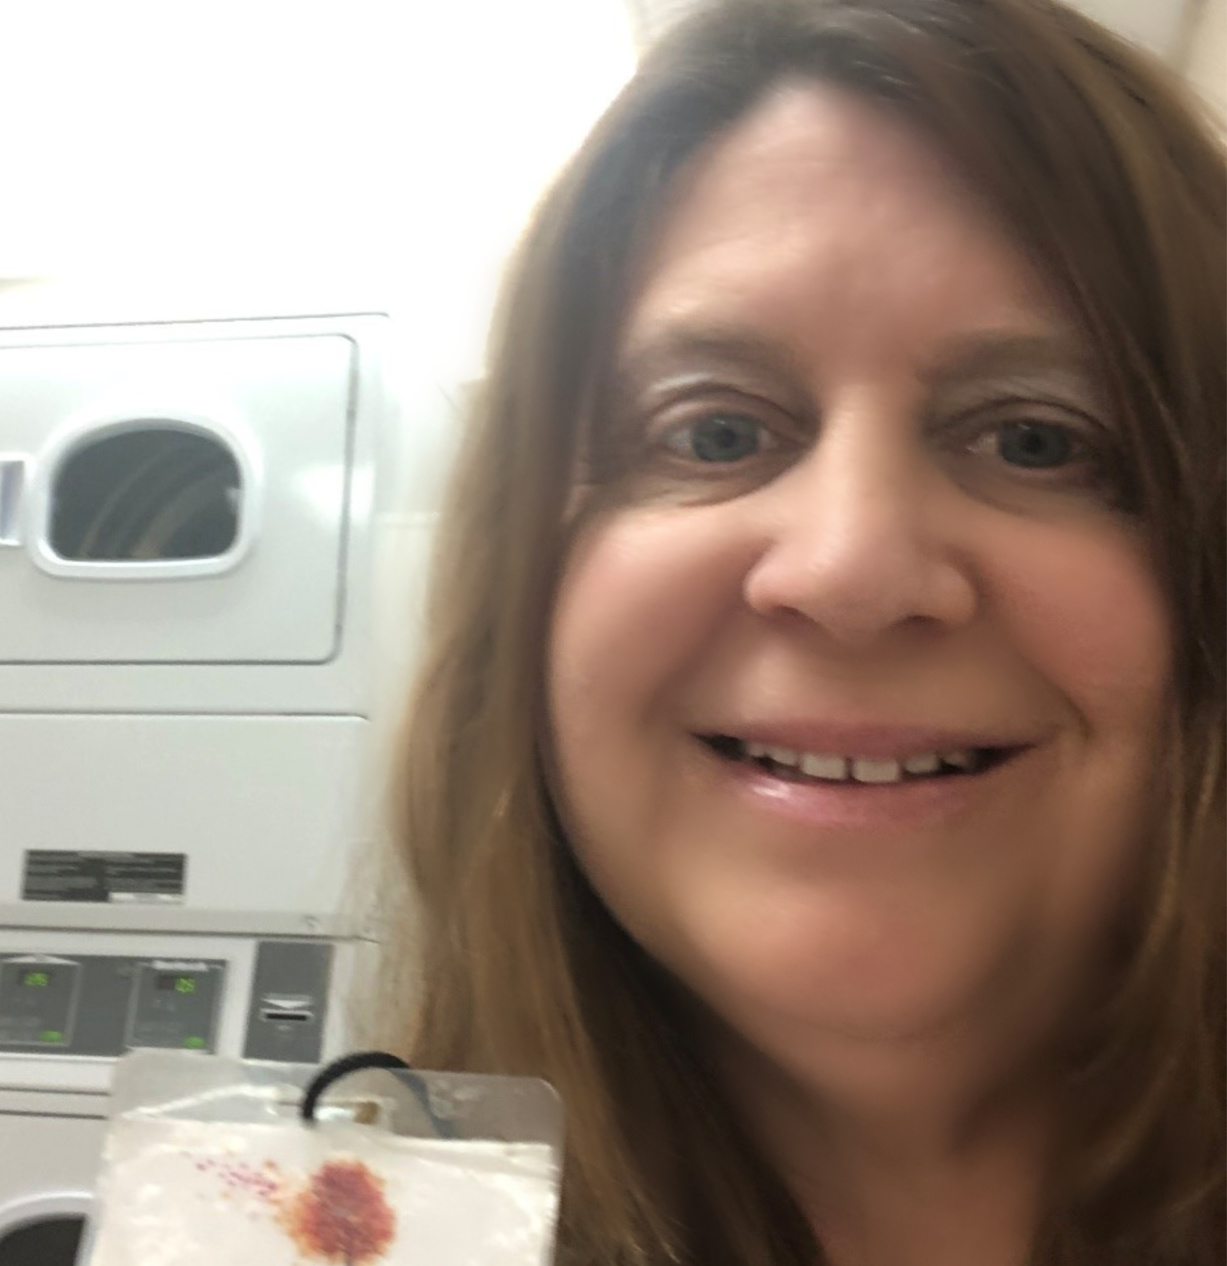 Tracy Savona is doing laundry for her client